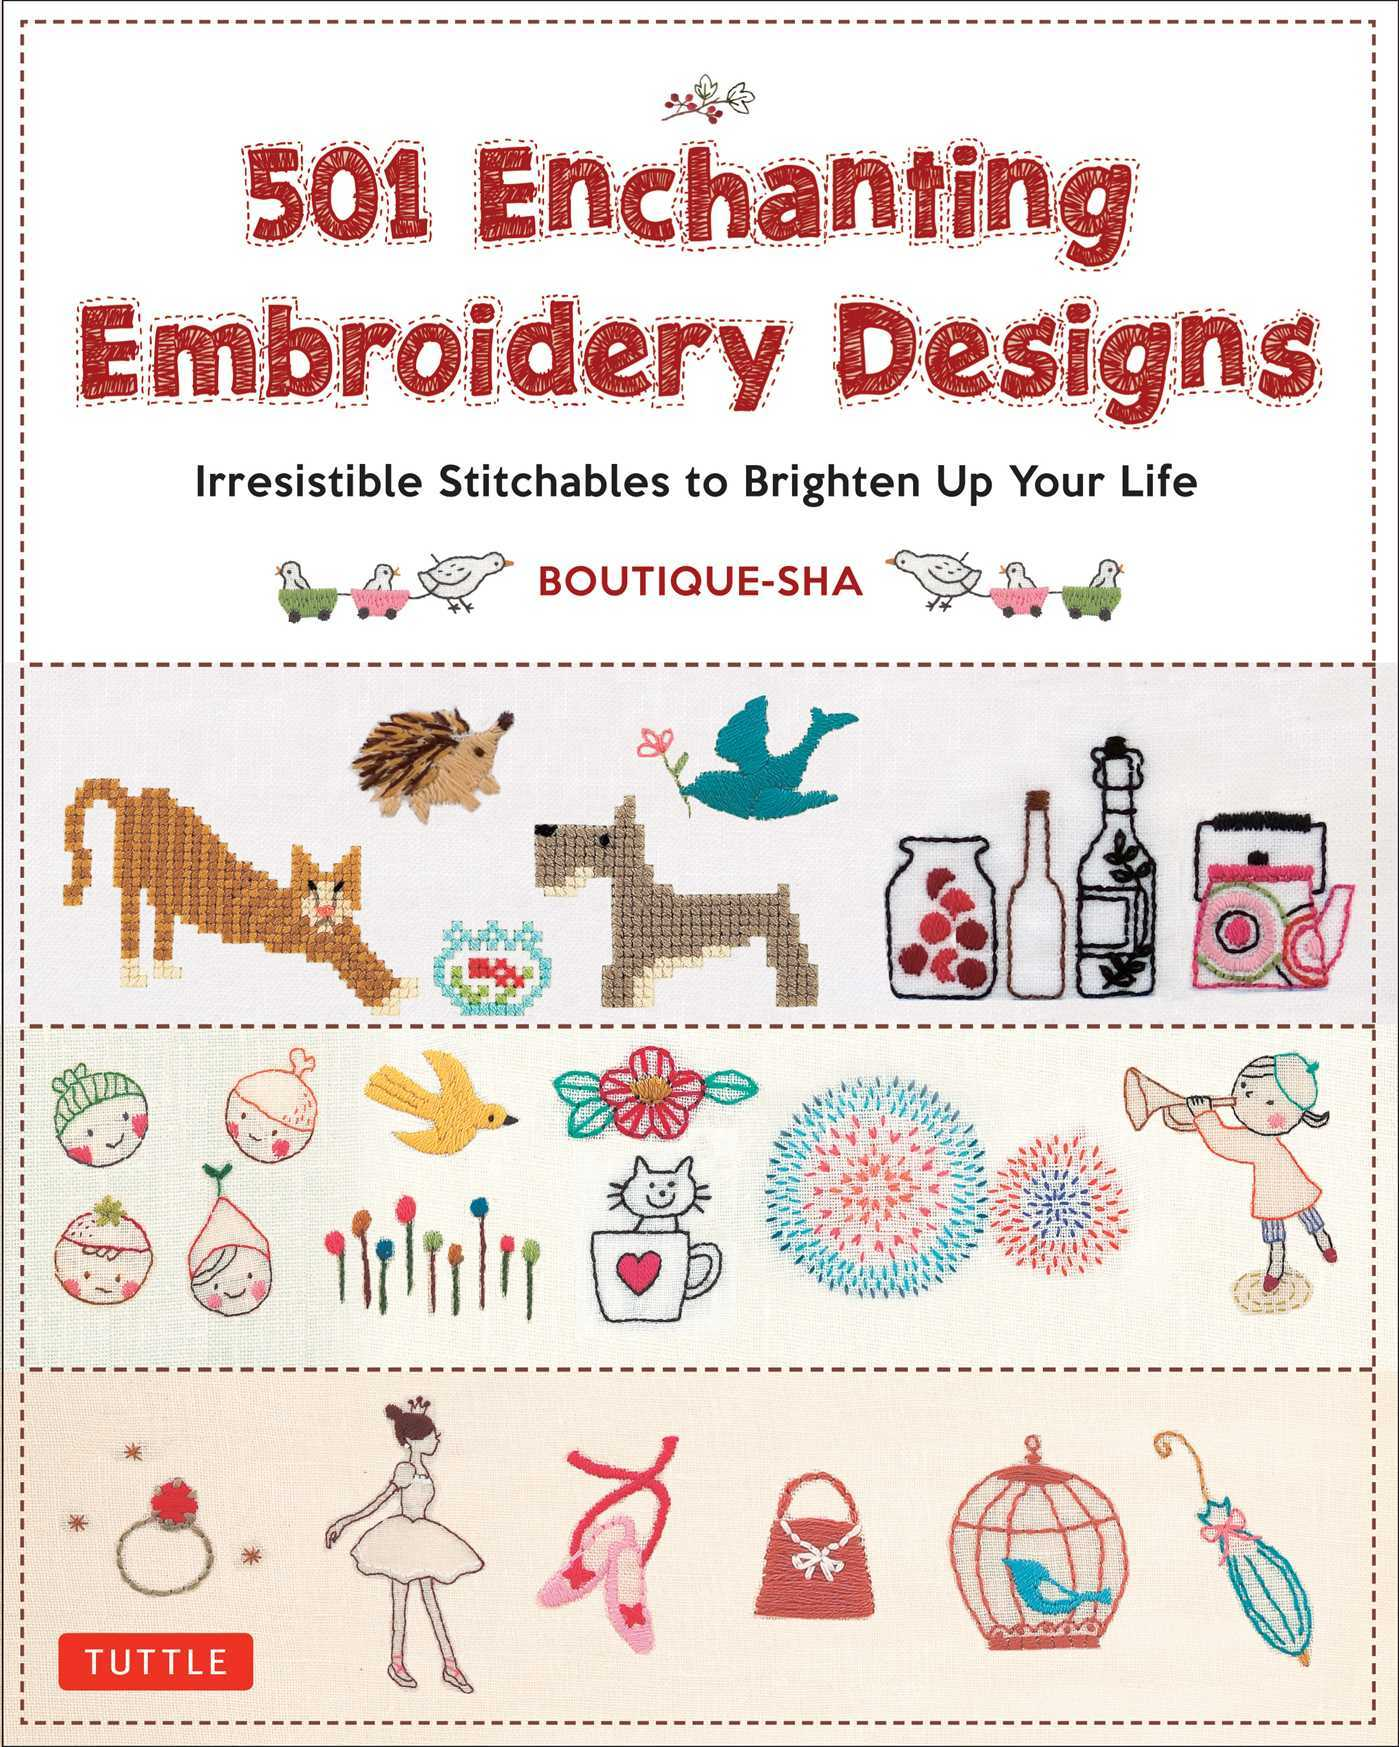 501 Enchanting Embroidery Designs: Irresistible Stitchables to Brighten Up Your Life  by  Boutique-sha